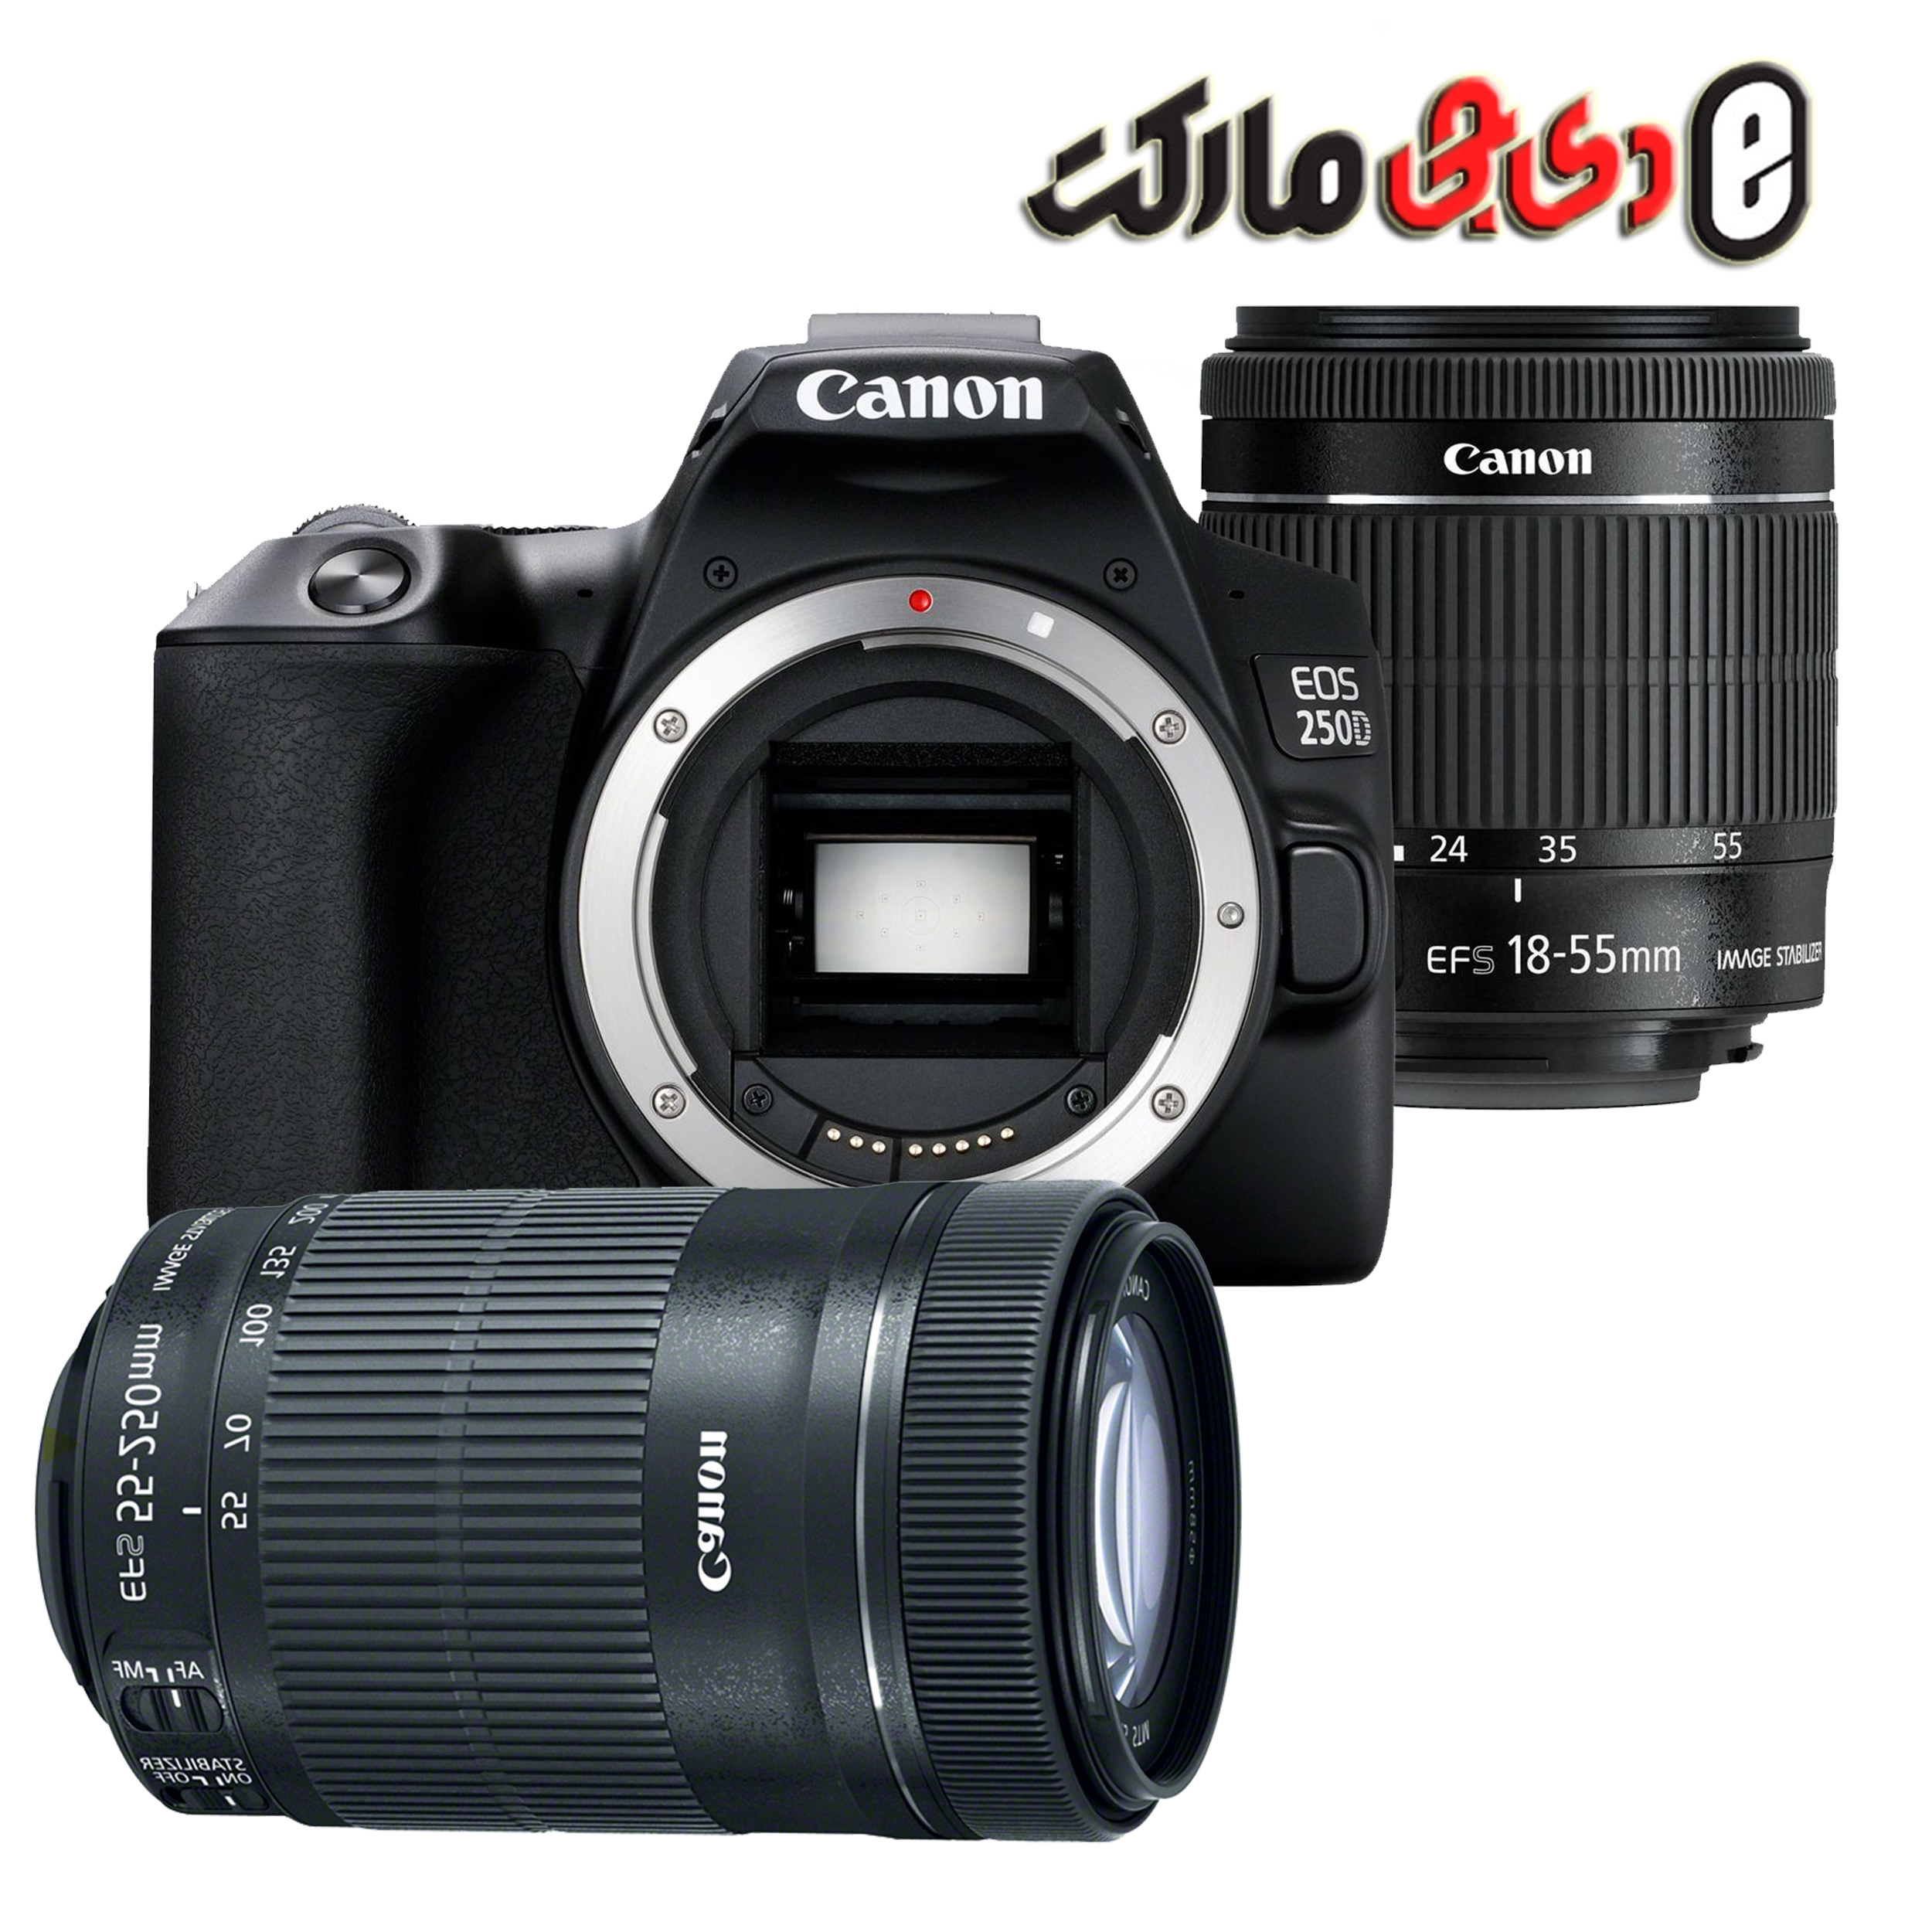 Canon EOS 1500D with EF-S 55-250mm f/4-5.6 IS STM